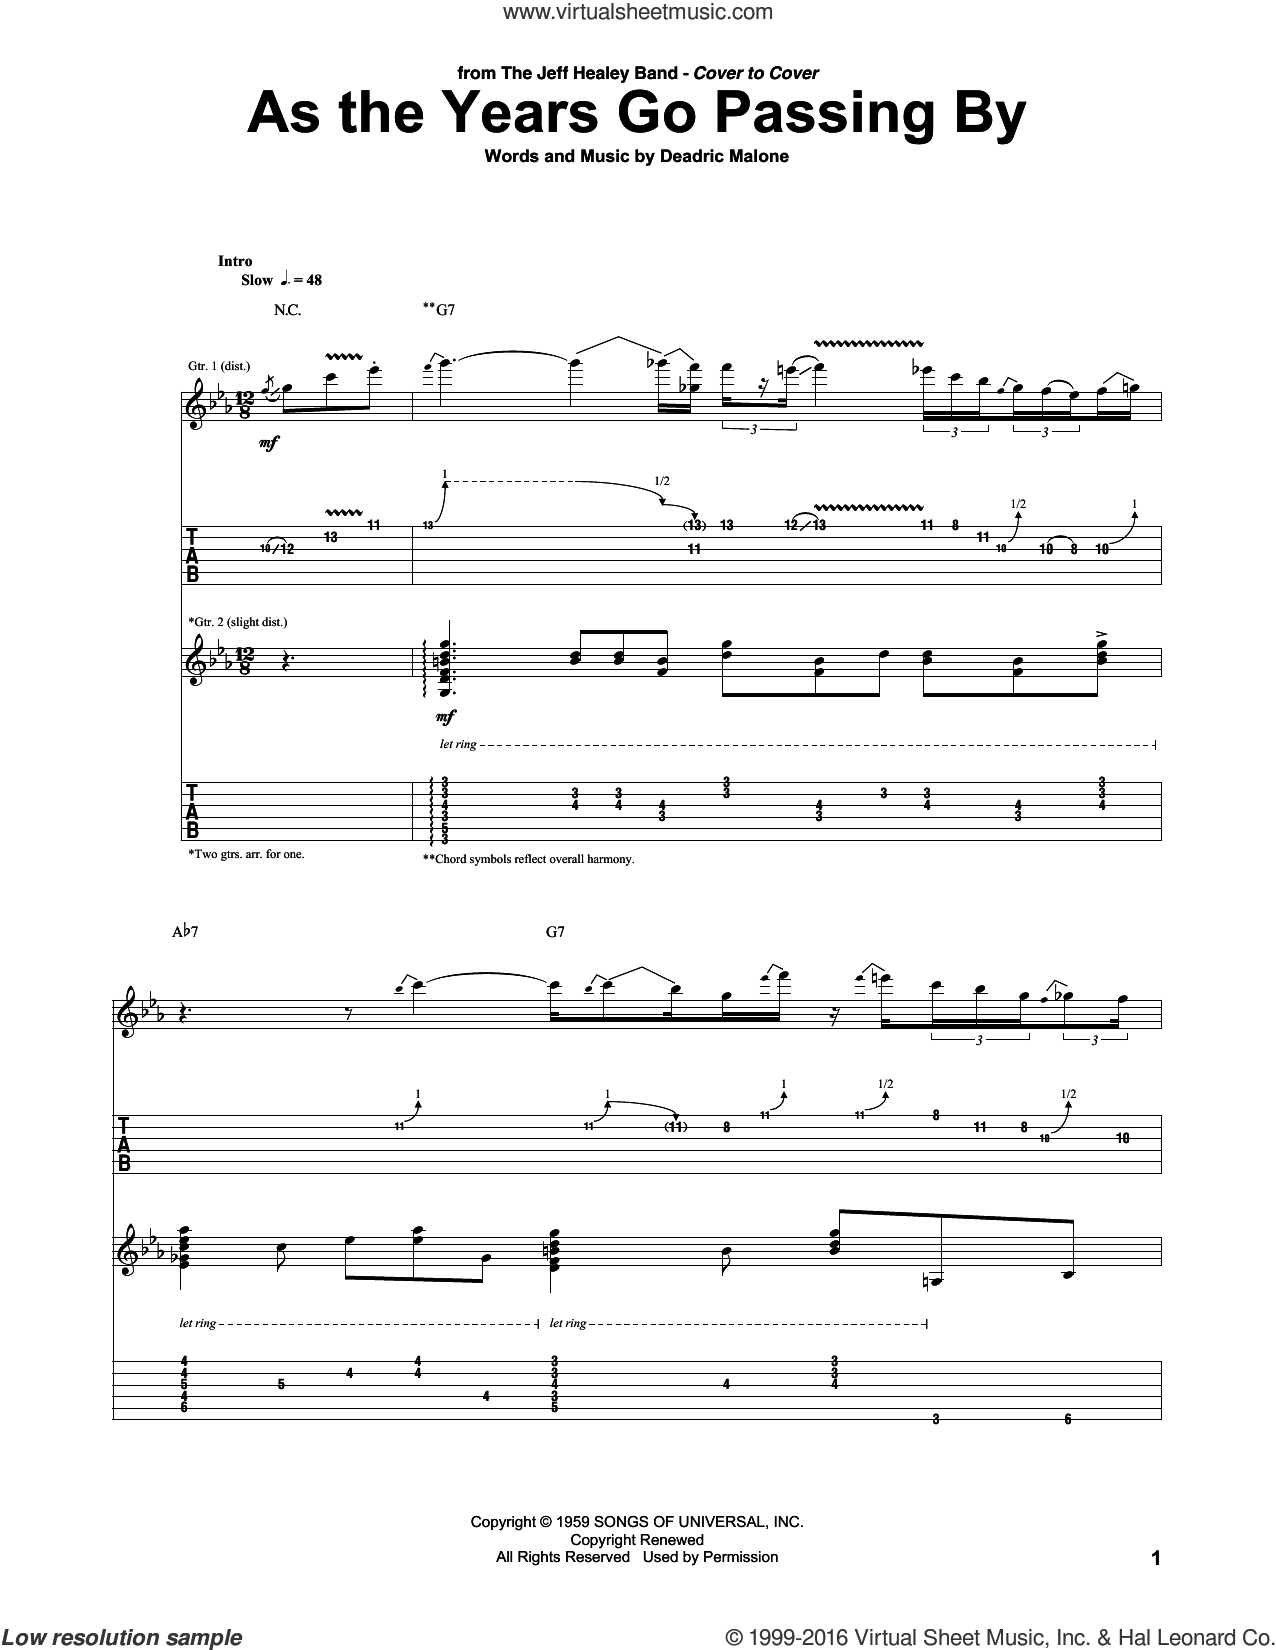 As The Years Go Passing By sheet music for guitar (tablature) by Deadric Malone. Score Image Preview.